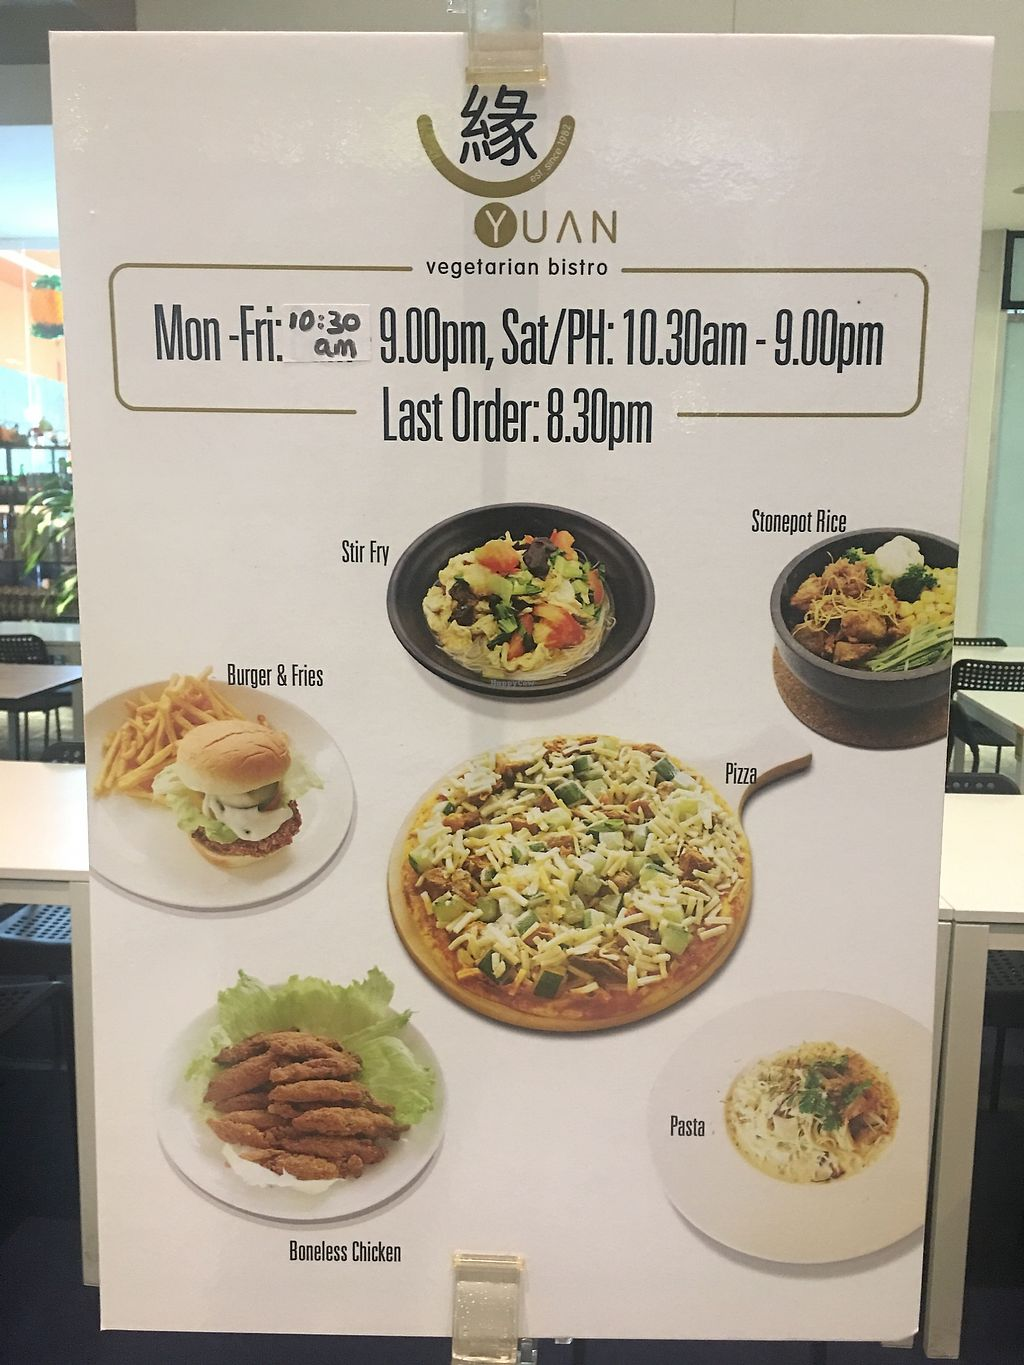 """Photo of Yuan Vegetarian Bistro  by <a href=""""/members/profile/BernardKoh"""">BernardKoh</a> <br/>Opening Hours <br/> February 20, 2018  - <a href='/contact/abuse/image/43835/361560'>Report</a>"""